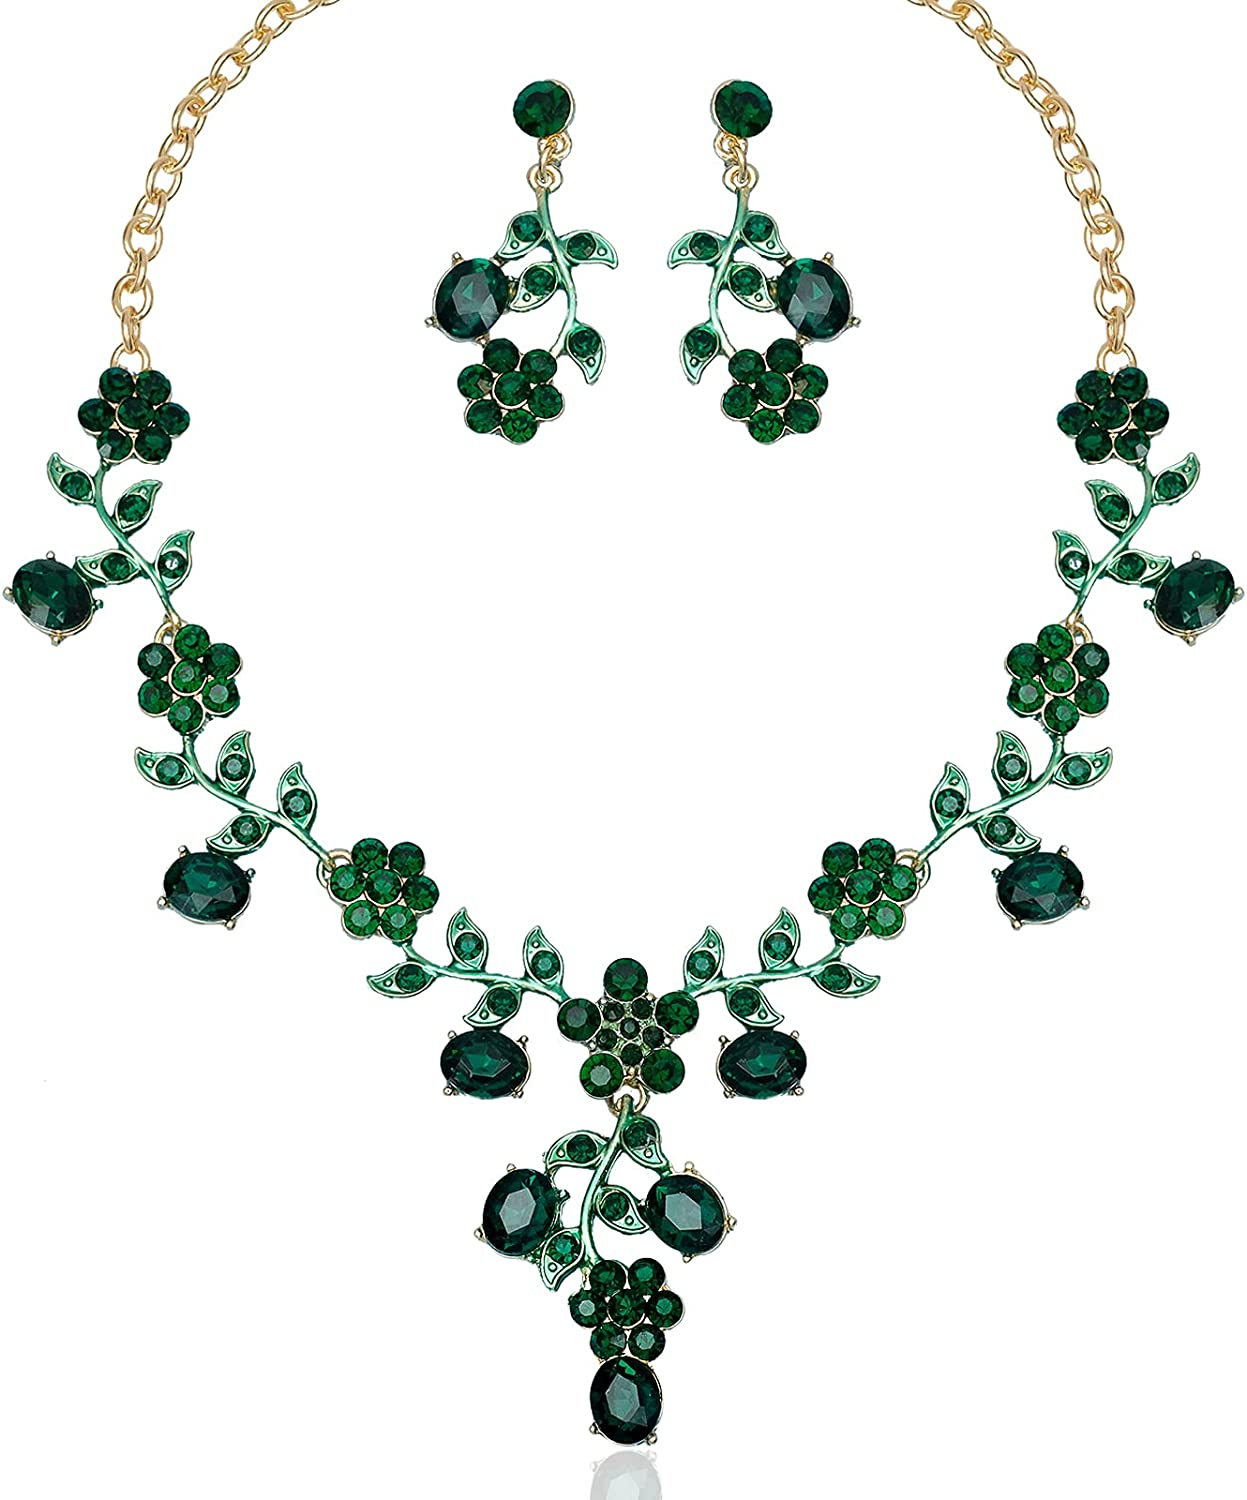 Bohemian Flower Leaf Bridal Statement Necklace Earring Austrian Crystal Wedding Jewelry Set for Bride Prom Dress Costume Accessories